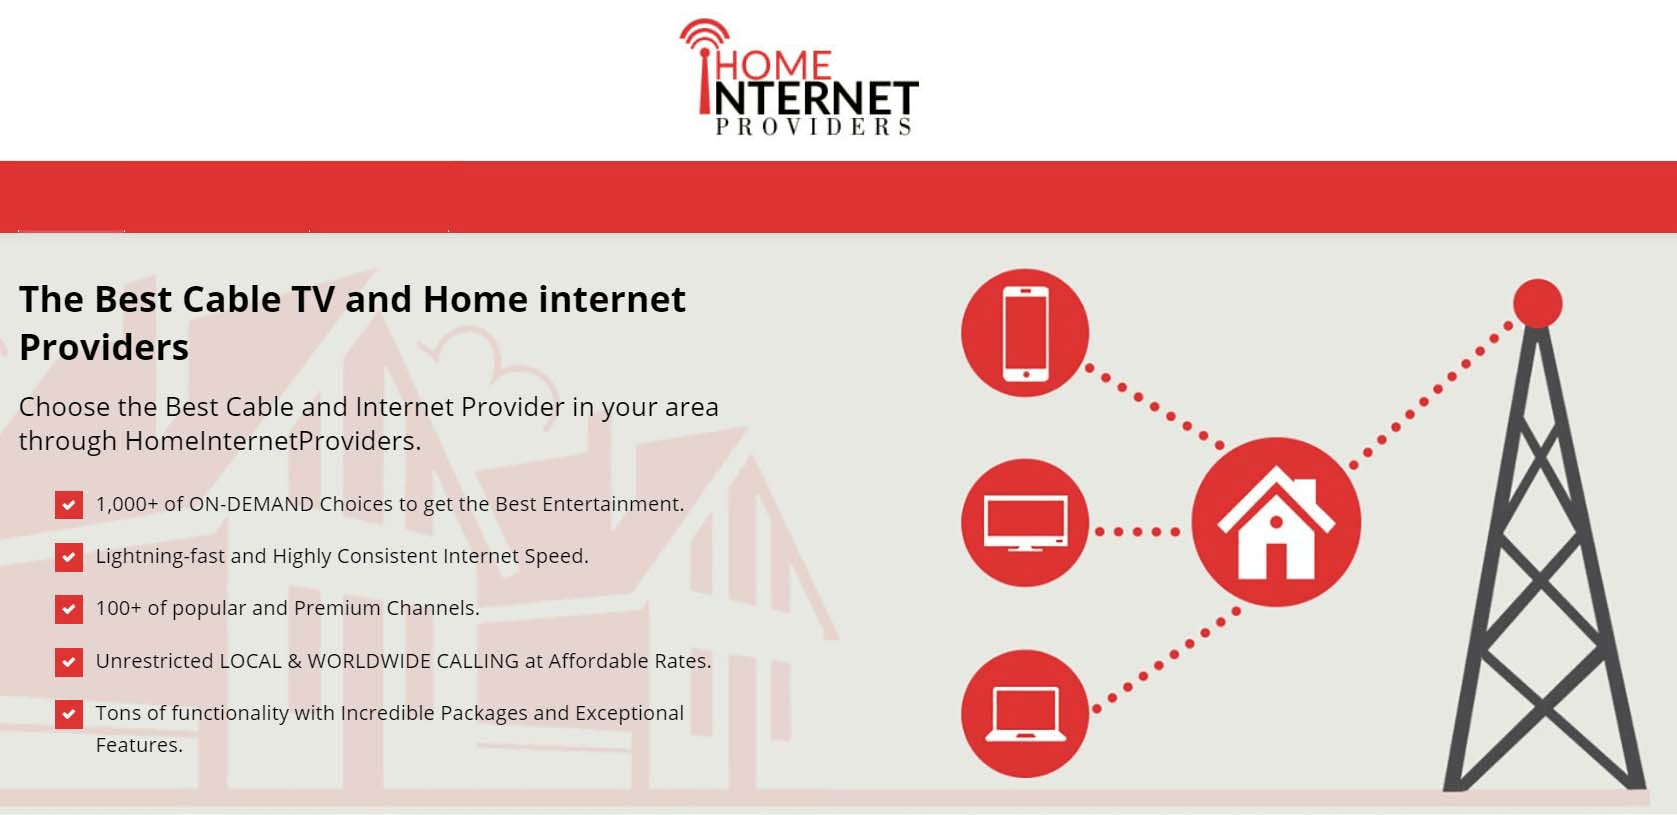 Tv And Internet Providers >> Home Internet Providers The Best Cable Tv And Home Internet Providers